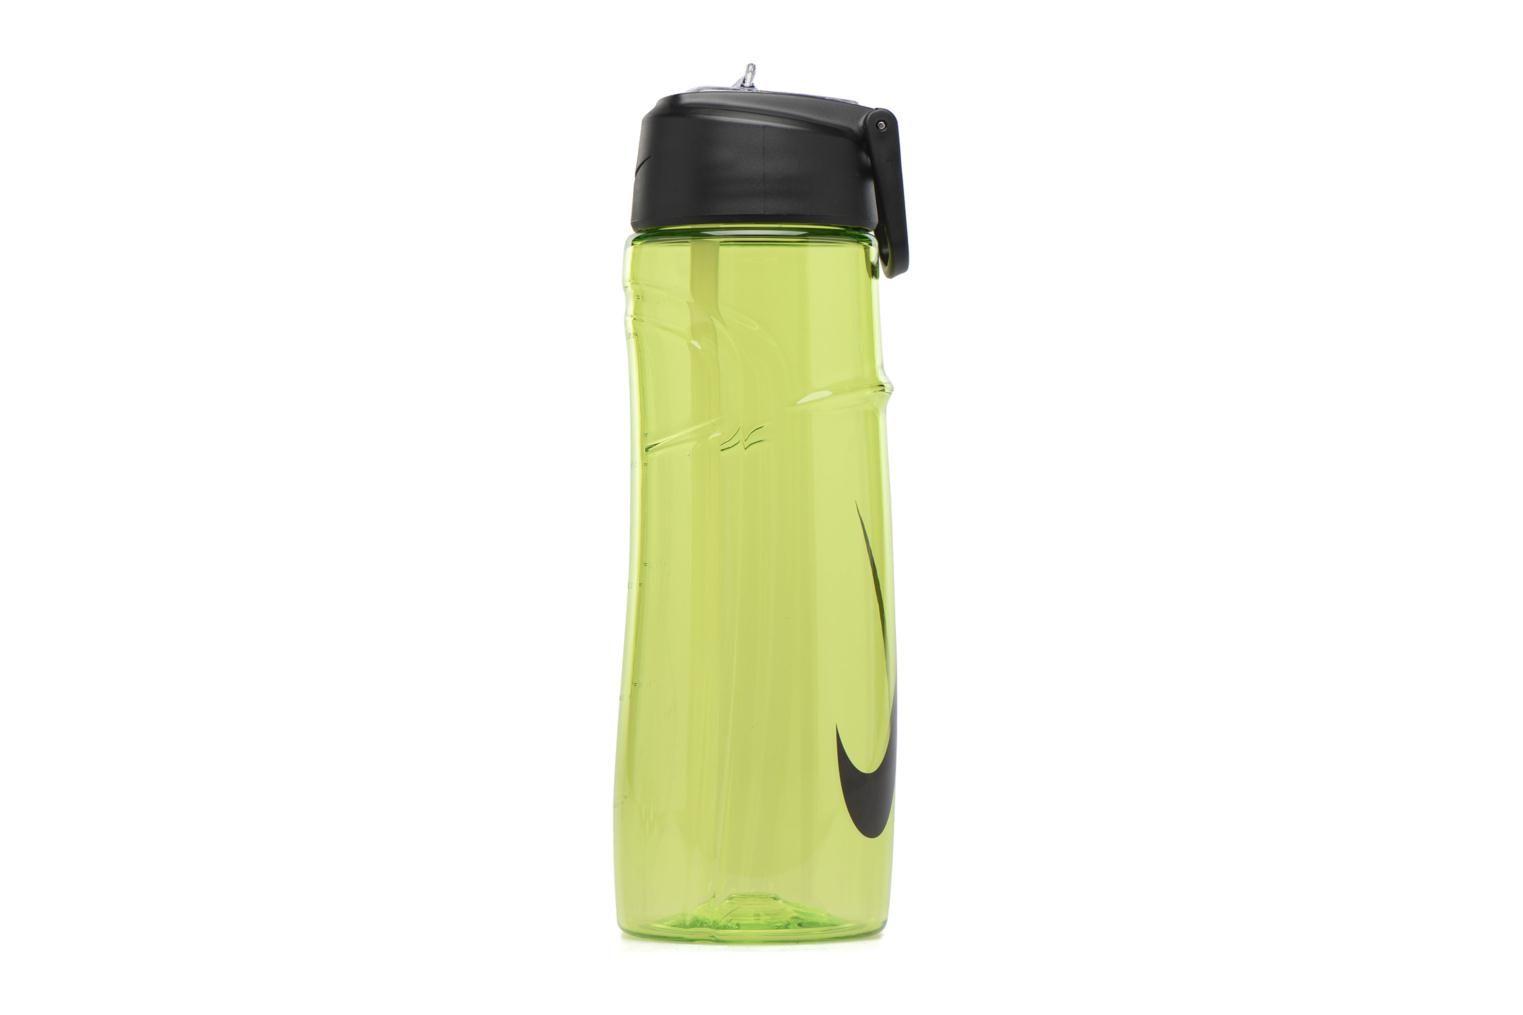 Divers Nike T1 FLOW SWOOSH WATER BOTTLE 24oz Groen rechts